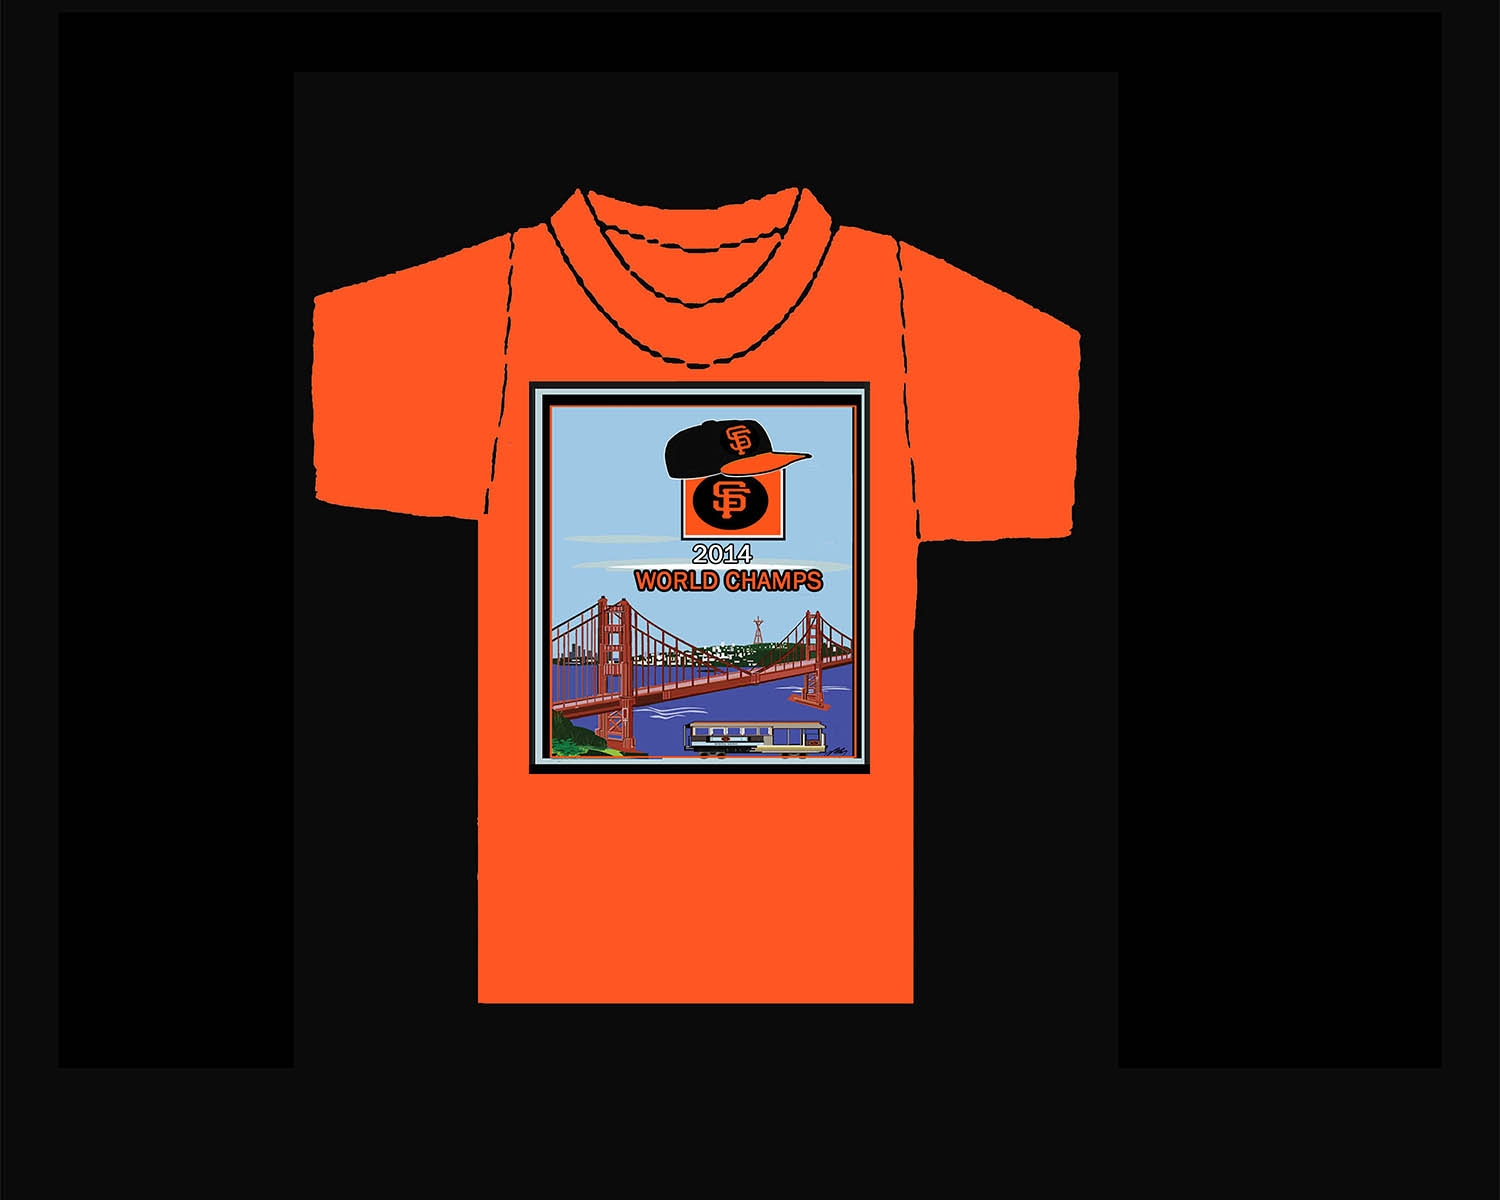 SF Giants World Champs T-Shirt.